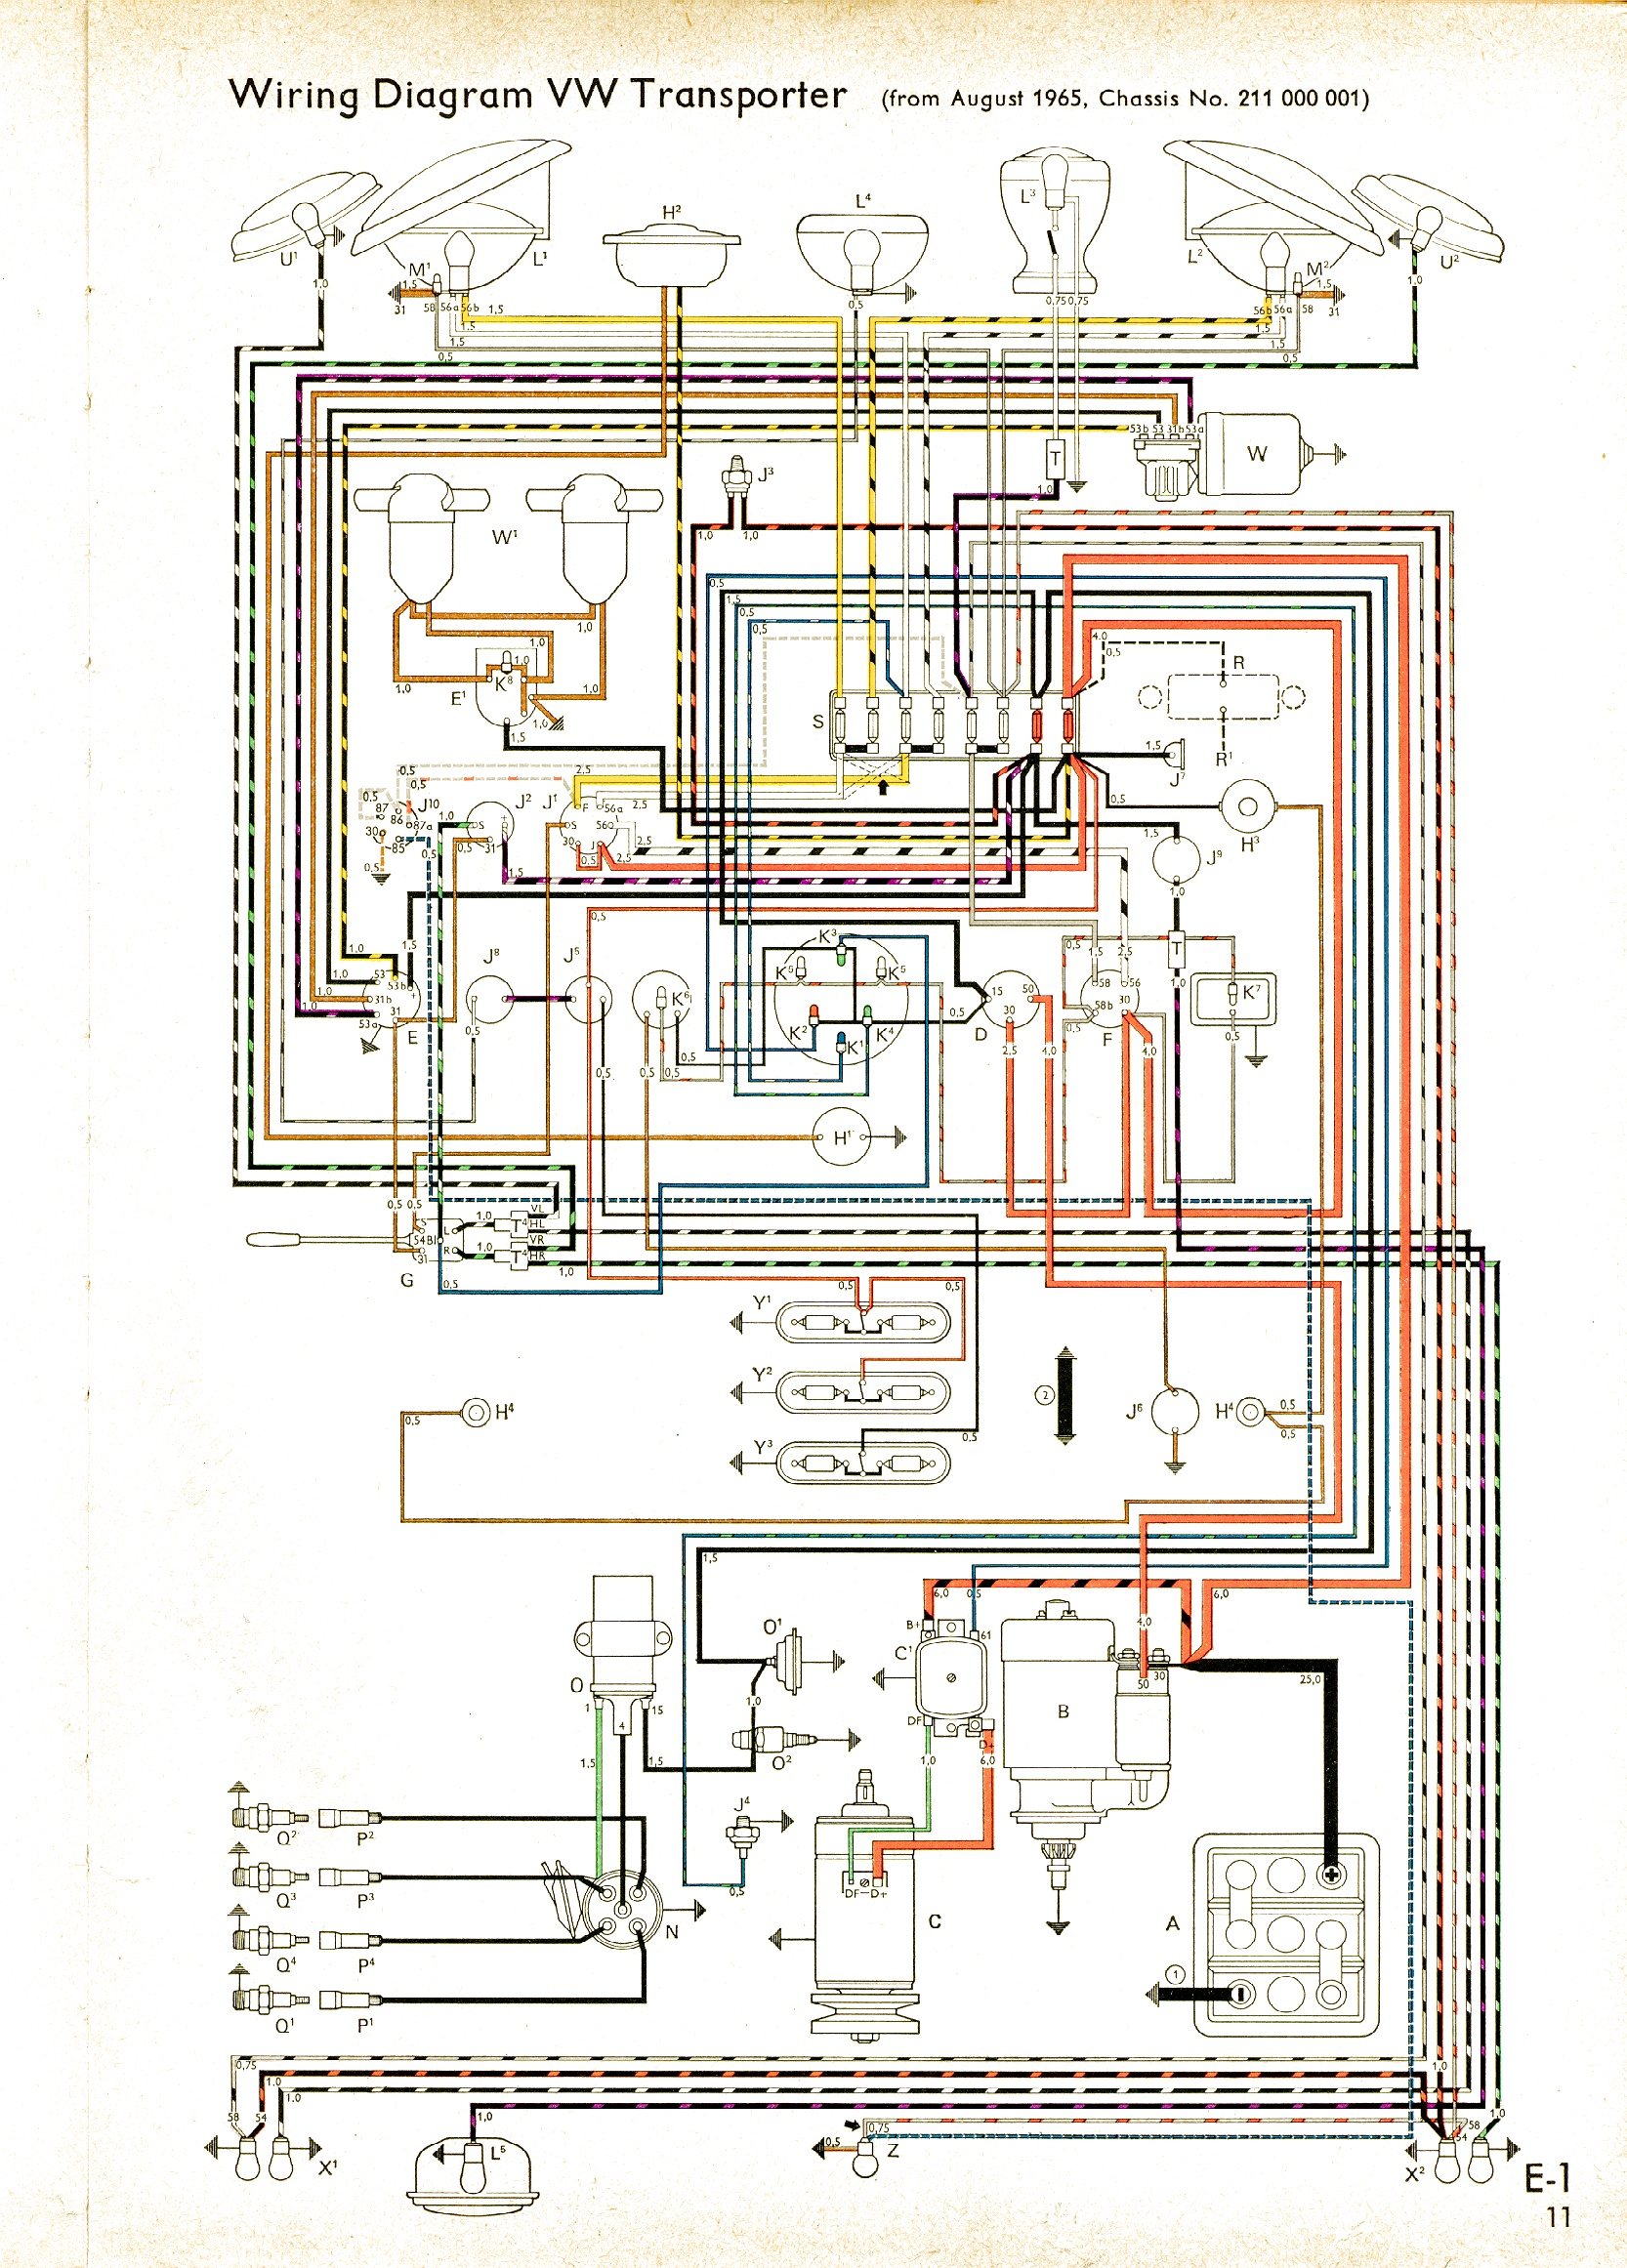 bus 65 vw wiring diagrams 1965 vw beetle wiring diagram at mifinder.co